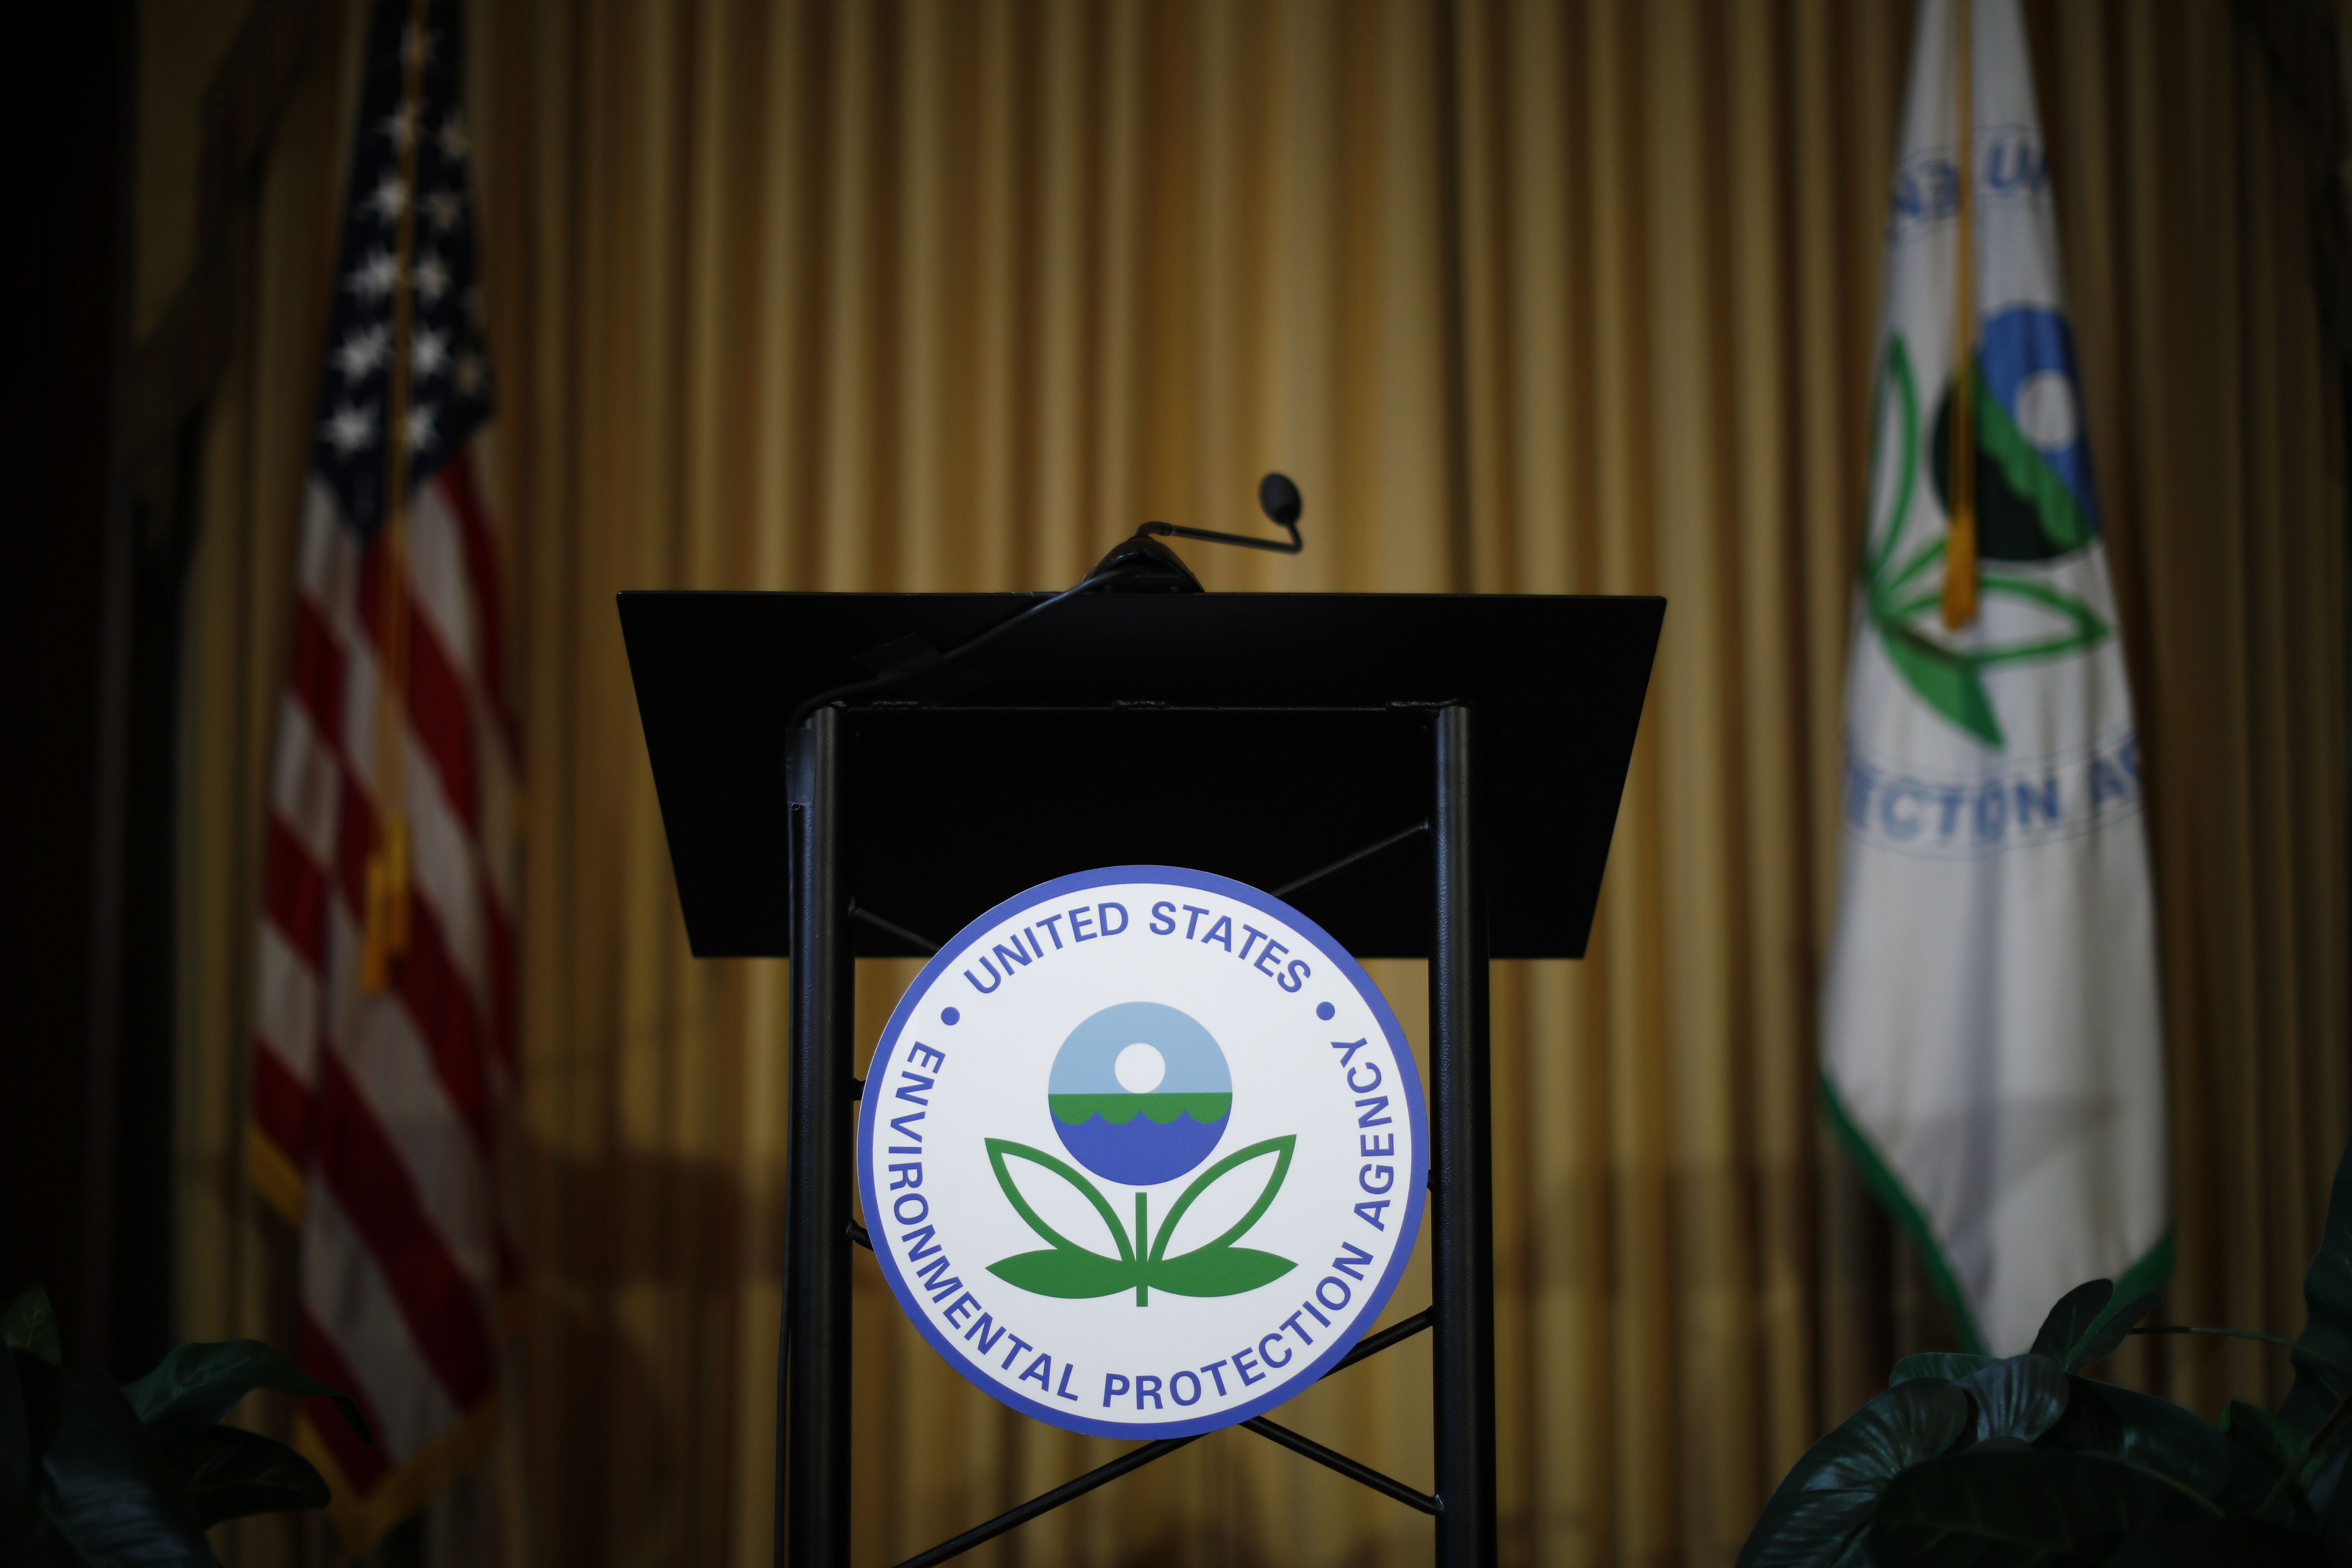 Environmental Protection Agency headquarters in Washington, D.C. REUTERS/Ting Shen